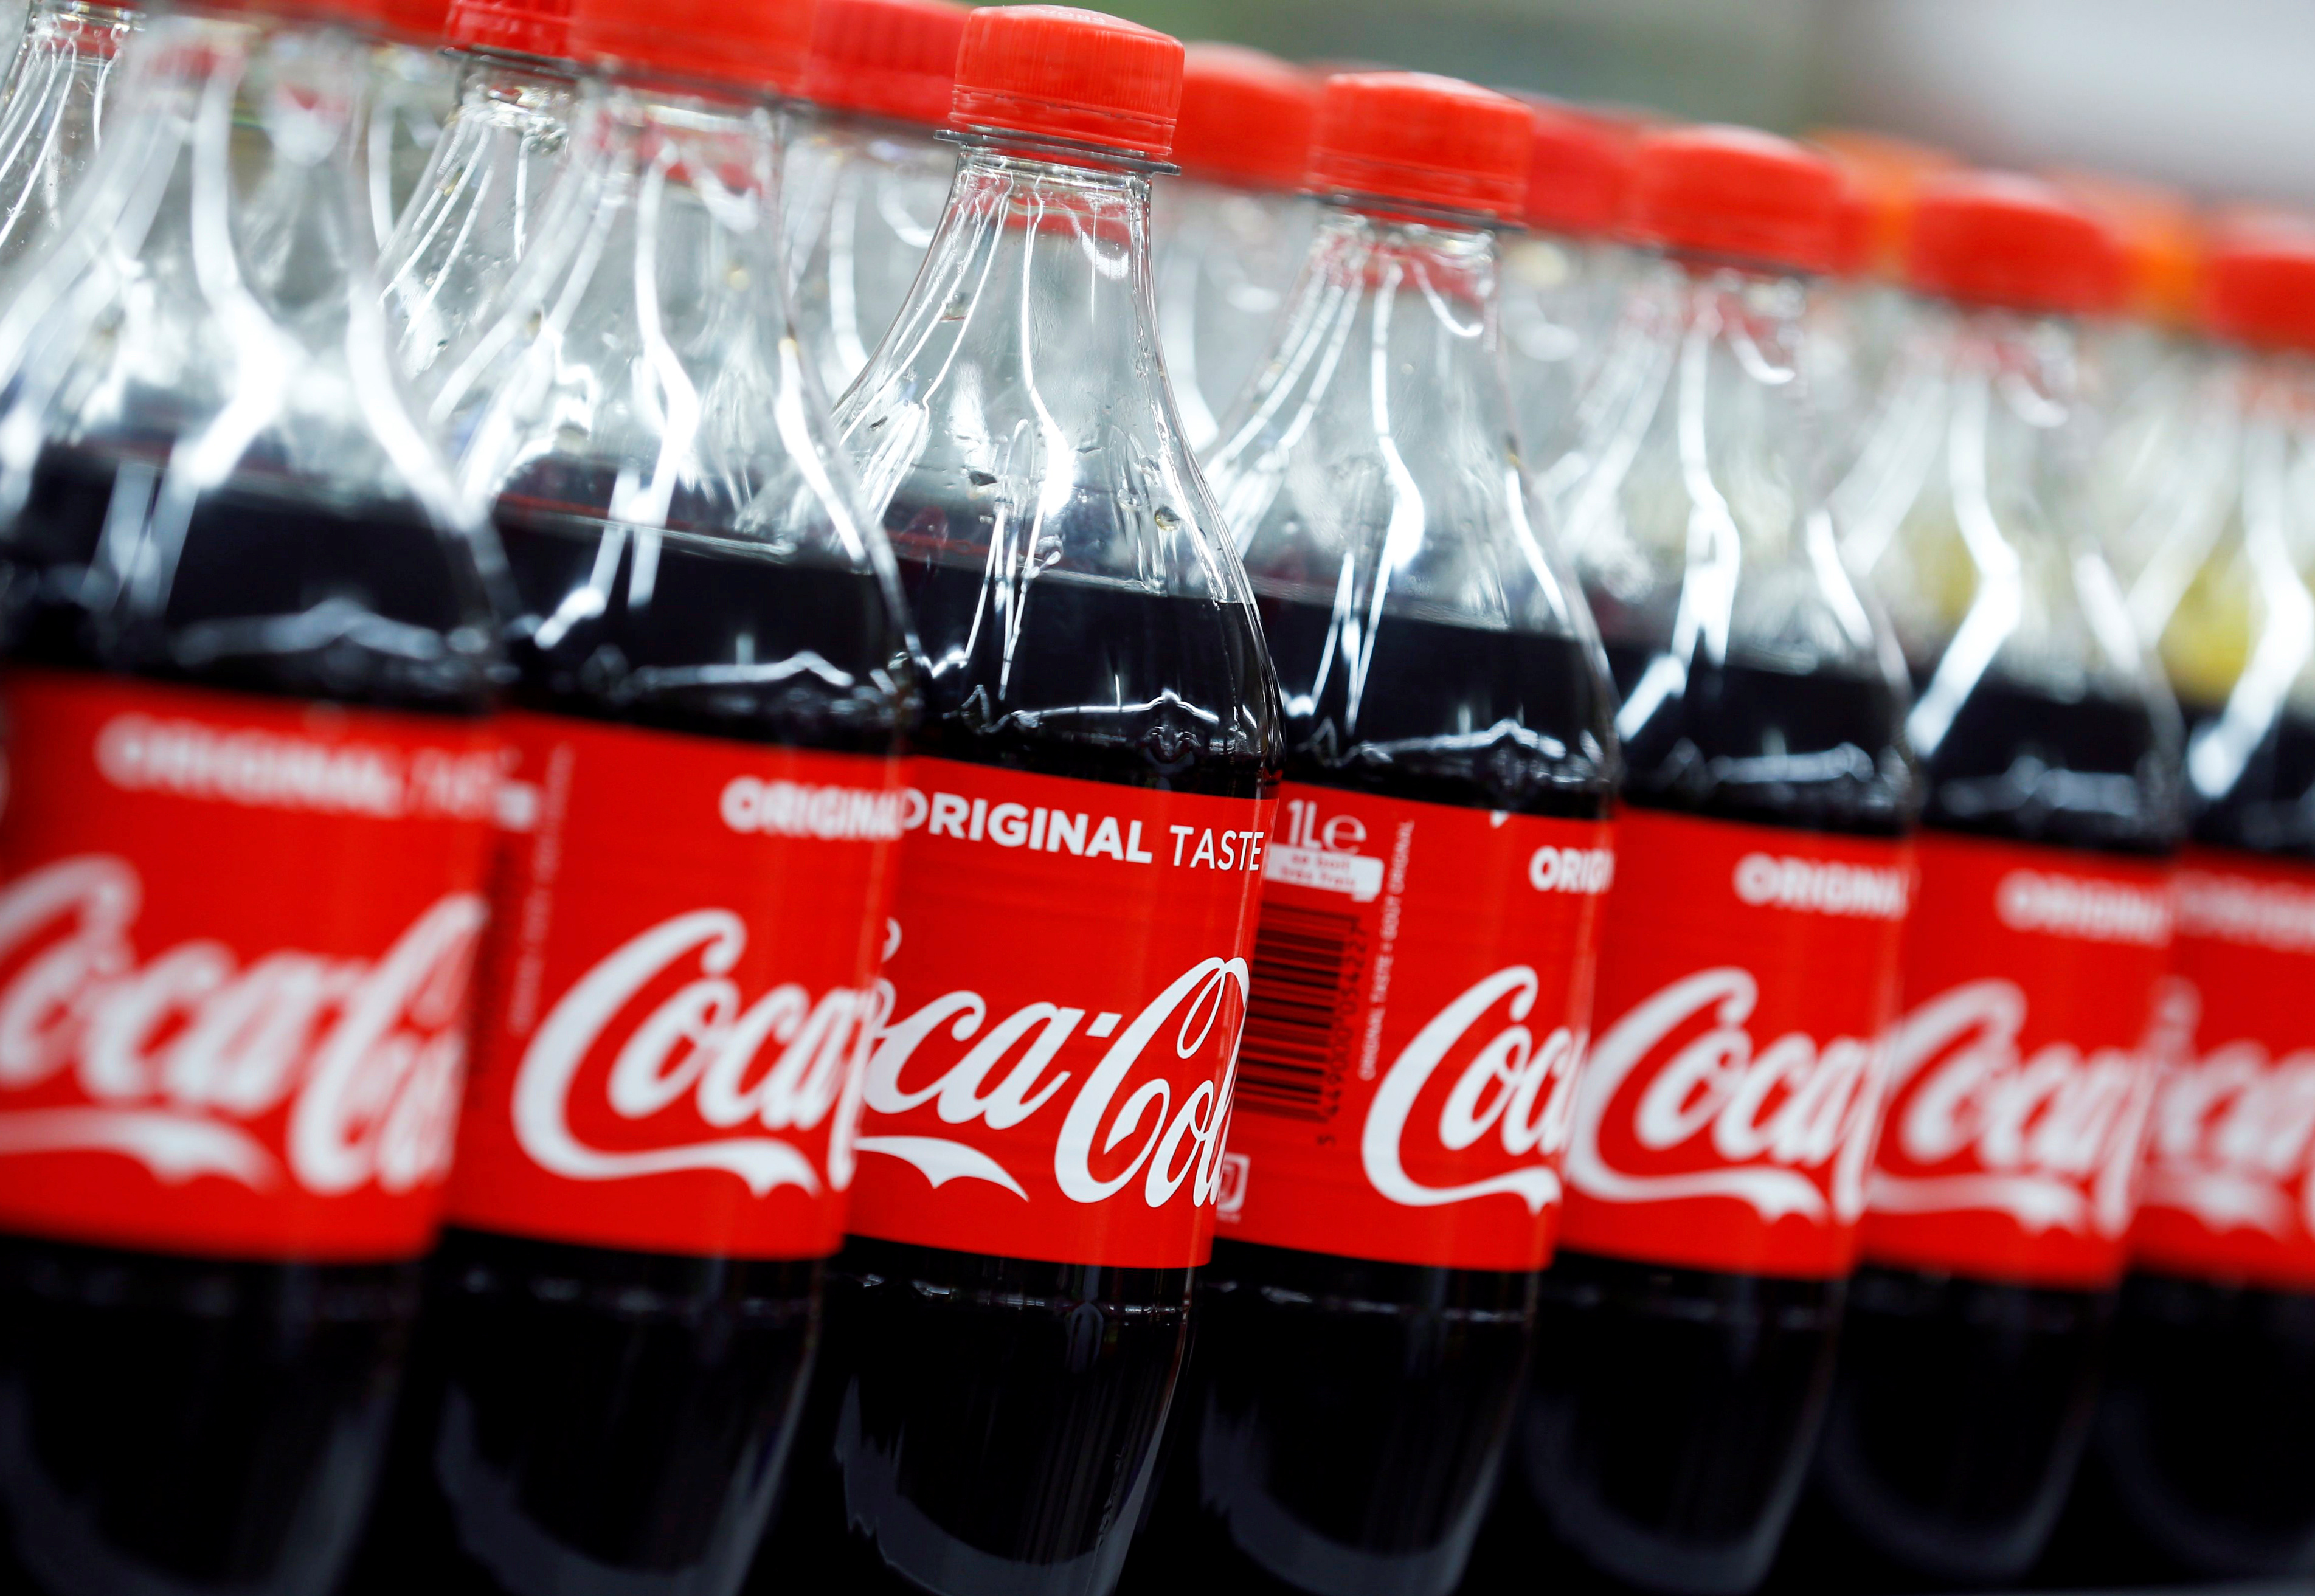 Bottles of Coca-Cola are seen at a store in Montreuil, near Paris, France, February 5, 2018. REUTERS/Regis Duvignau